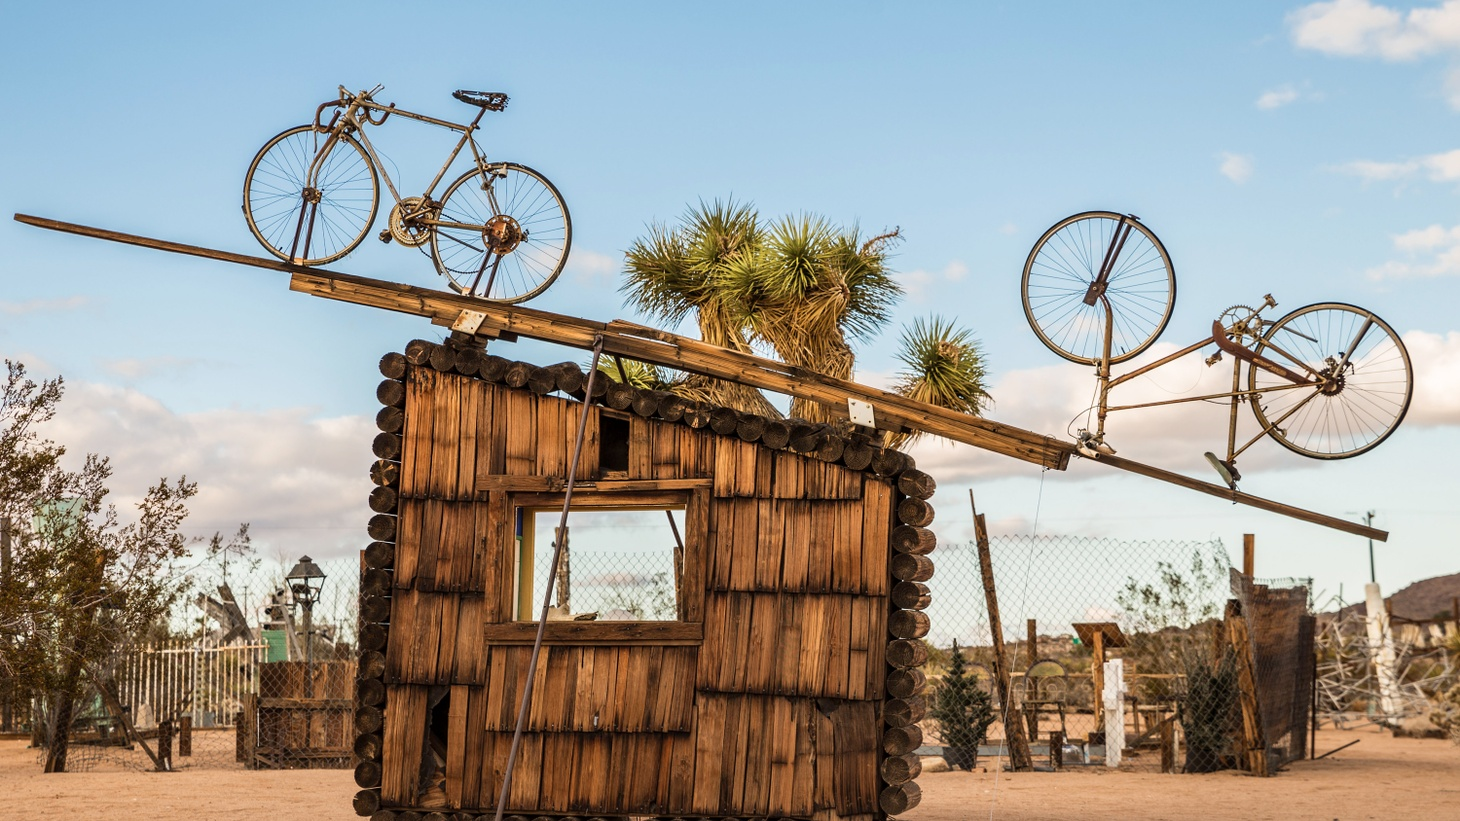 The late artist Noah Purifoy spent the last 15 years of his life in the Mojave desert, creating huge sculptures made of junked materials. Purifoy was also a big figure in L.A., as a founding director of the Watts Towers Art Center.